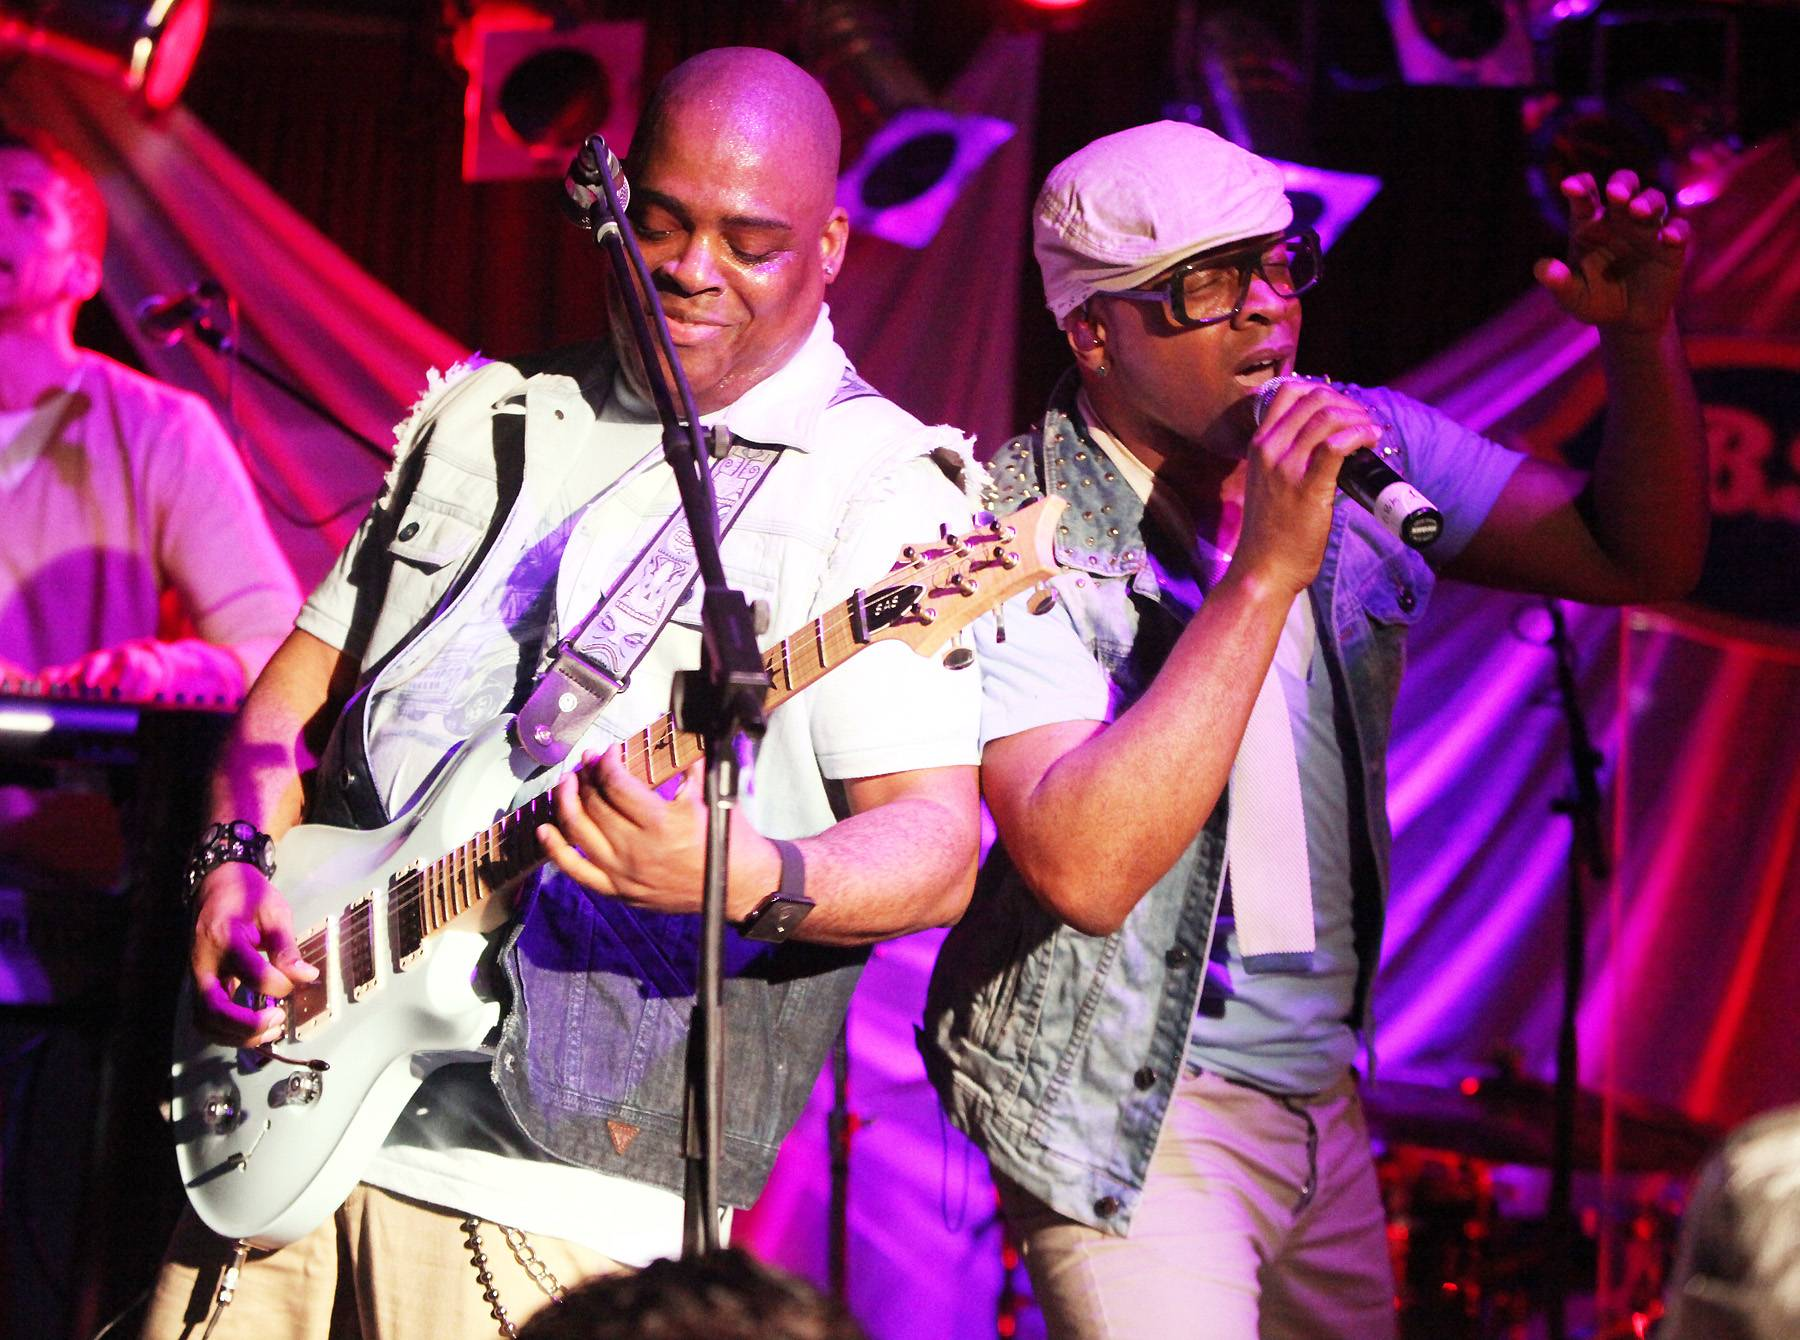 Proof in the Performance - It's evident that Mint Condition used a formula taken from the best bands and applied it to their groovy R&B life. Don't miss them perform on Apollo Live, tonight at 10P/9C.